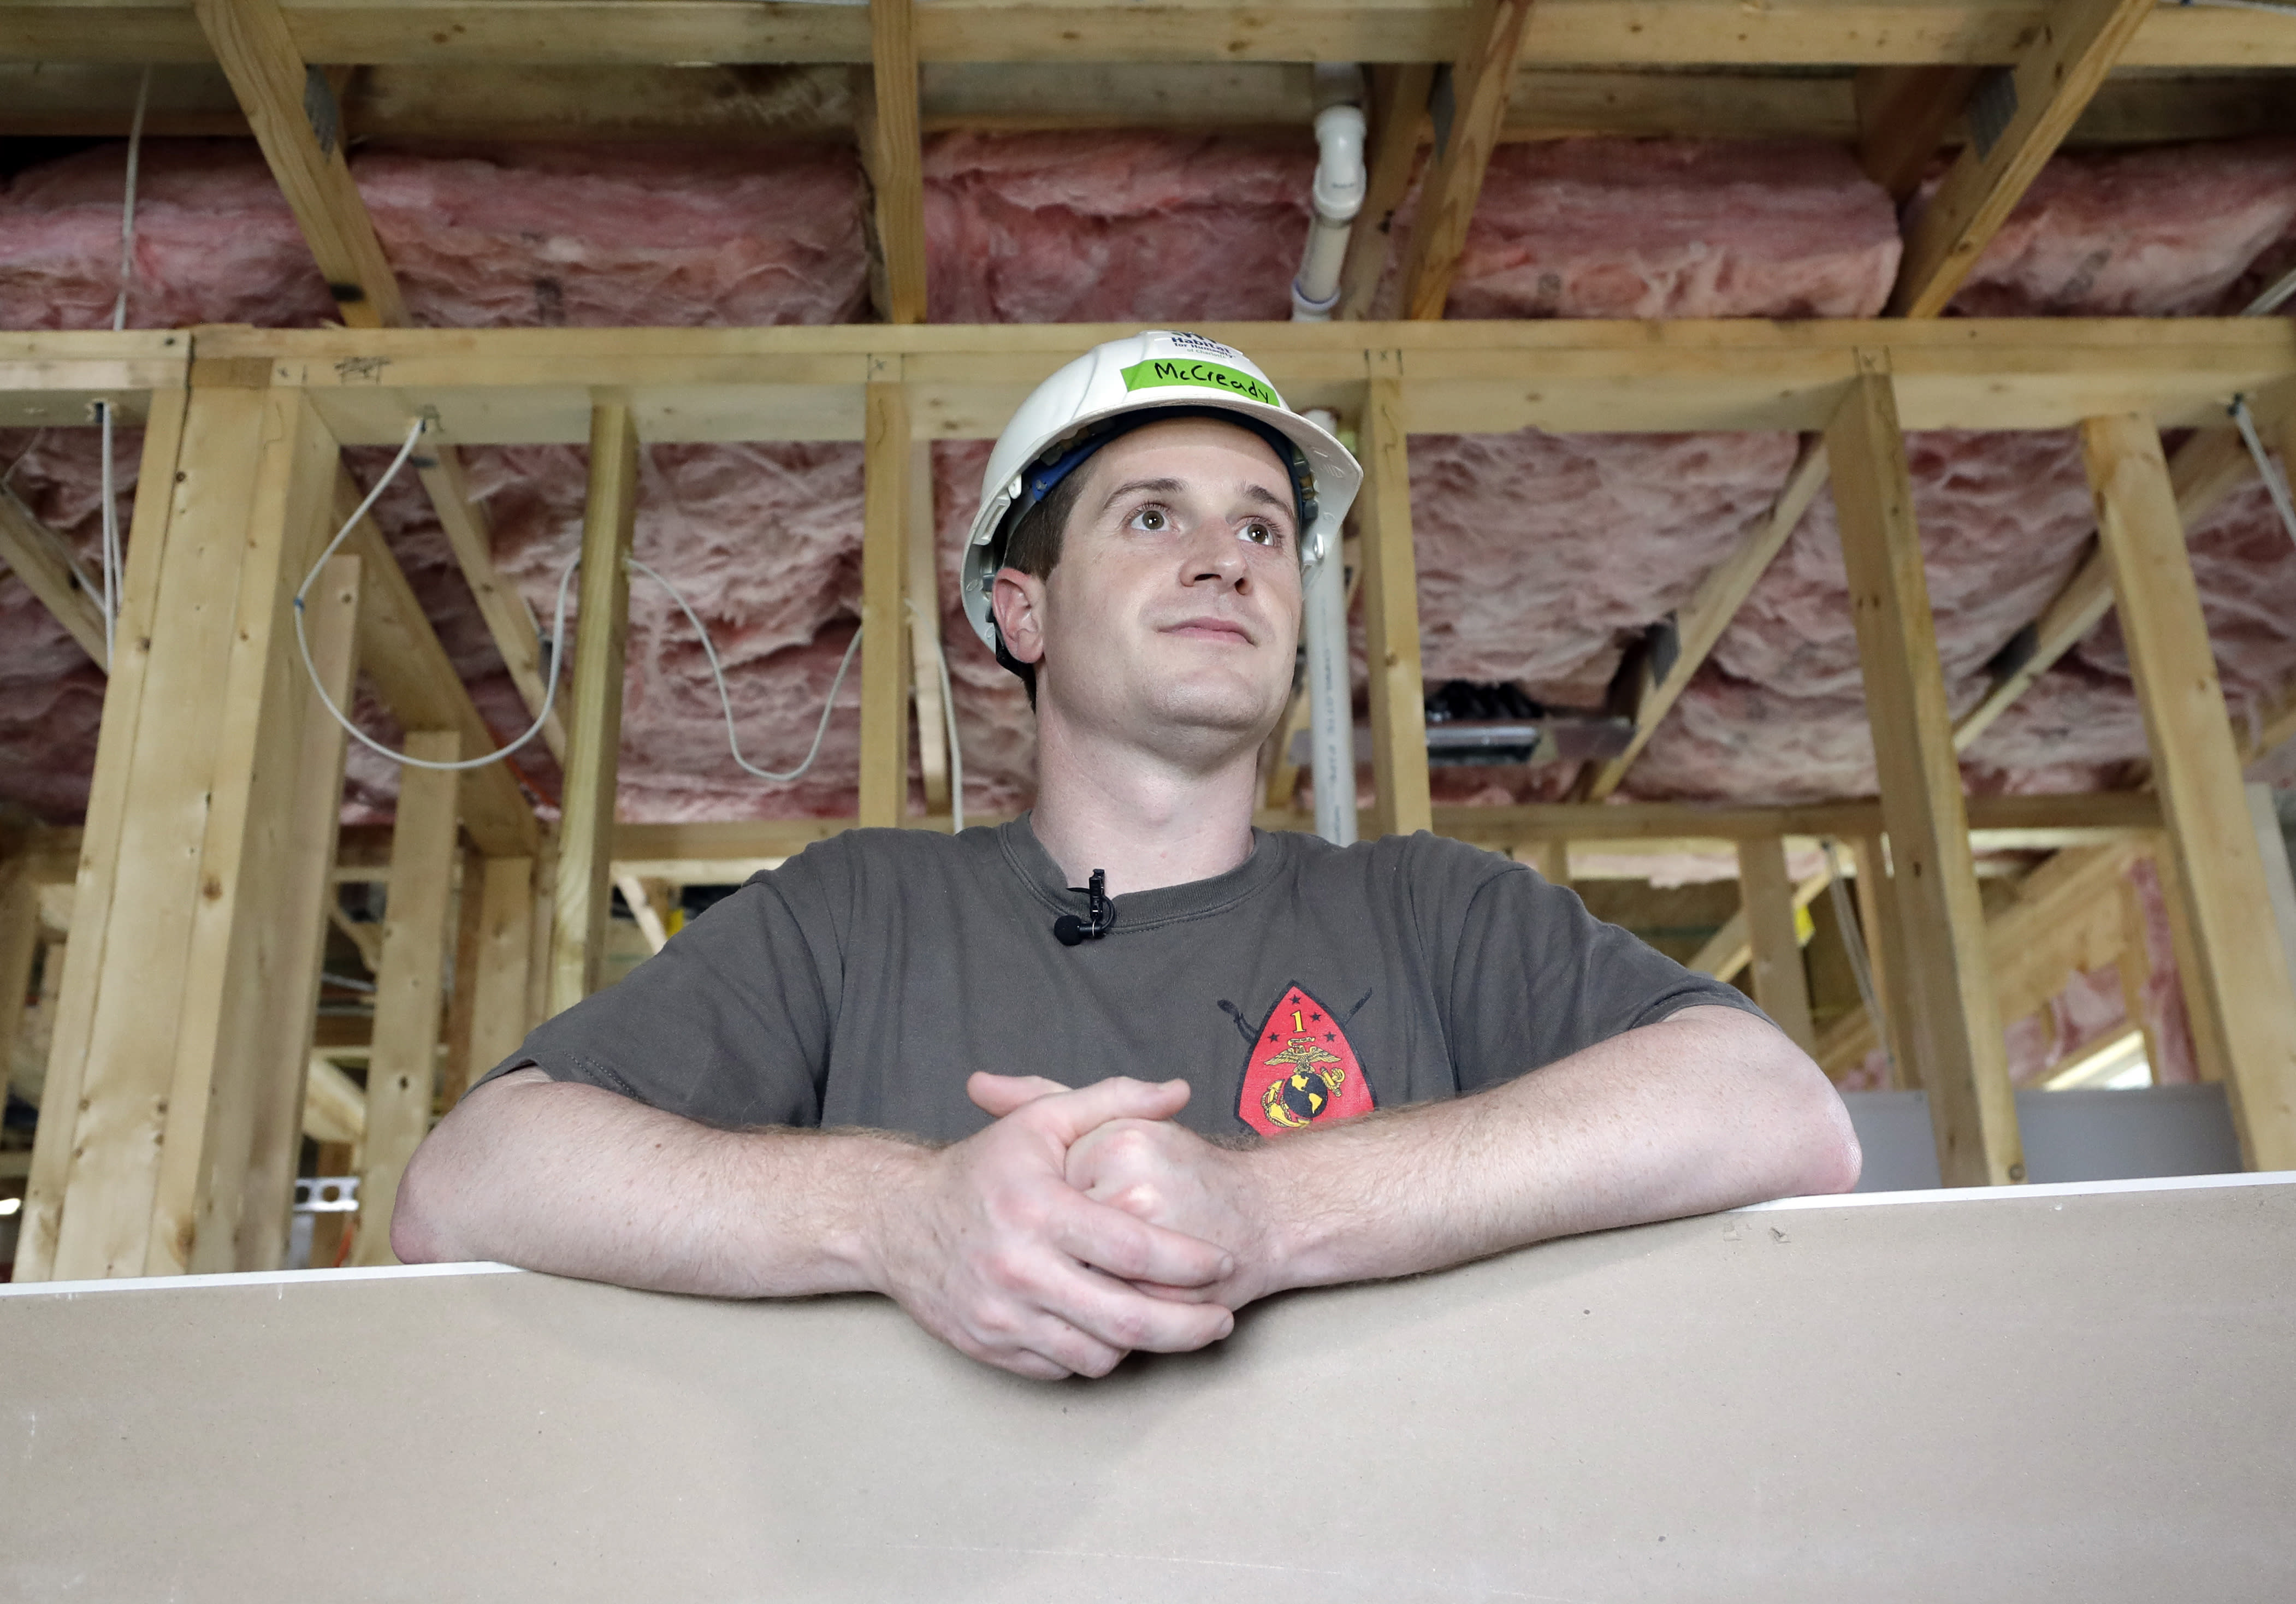 """FILE - In this Sept. 26, 2018 file photo, Democratic congressional candidate Dan McCready, left, leans against wallboard as he pauses during a Habitat For Humanity building event in Charlotte, N.C. North Carolina election officials agreed Friday, Nov. 30, to hold a public hearing into alleged """"numerous irregularities"""" and """"concerted fraudulent activities"""" involving traditional mail-in absentee ballots in the 9th Congressional District, apparently in two rural counties. Republican Mark Harris leads McCready by 905 votes from nearly 283,000 cast in all or parts of eight south-central counties reaching from Charlotte to near Fayetteville. (AP Photo/Chuck Burton, File)"""